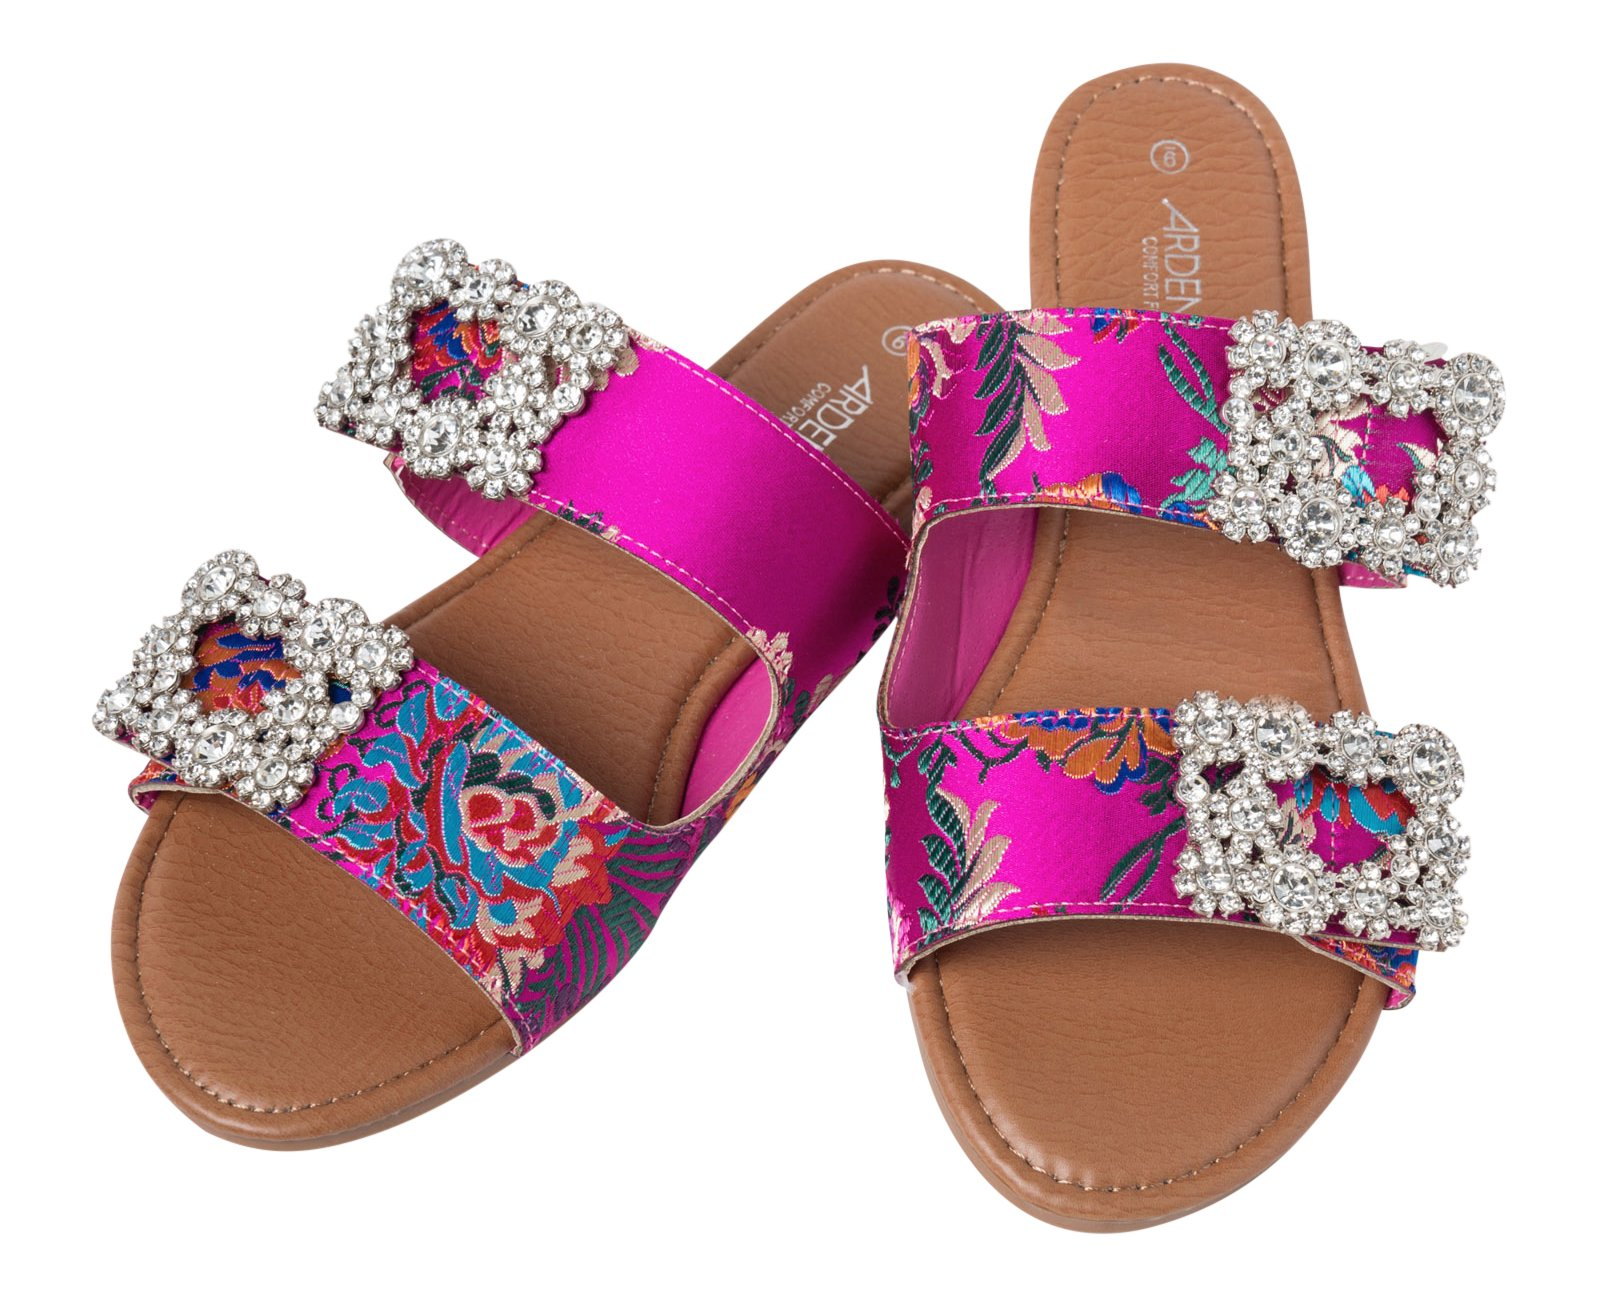 Ardene Women's - Slides - Floral Slides with Brooch 8 -(8A-FW00561)